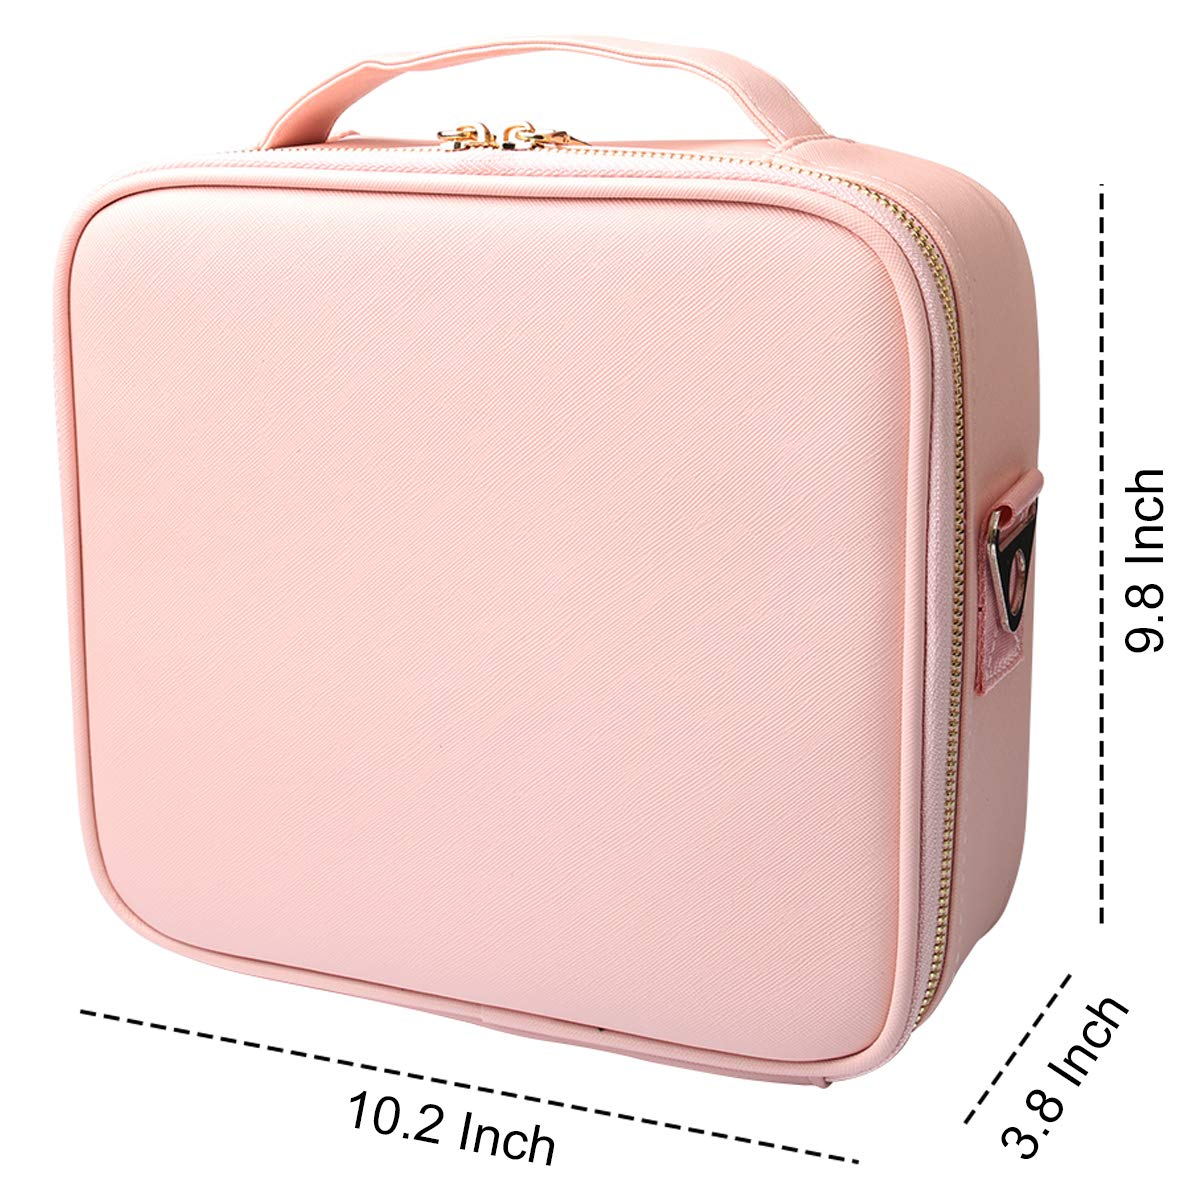 Travel Makeup Case, PU Leather Portable Organizer Cosmetic Train Case (Pink)